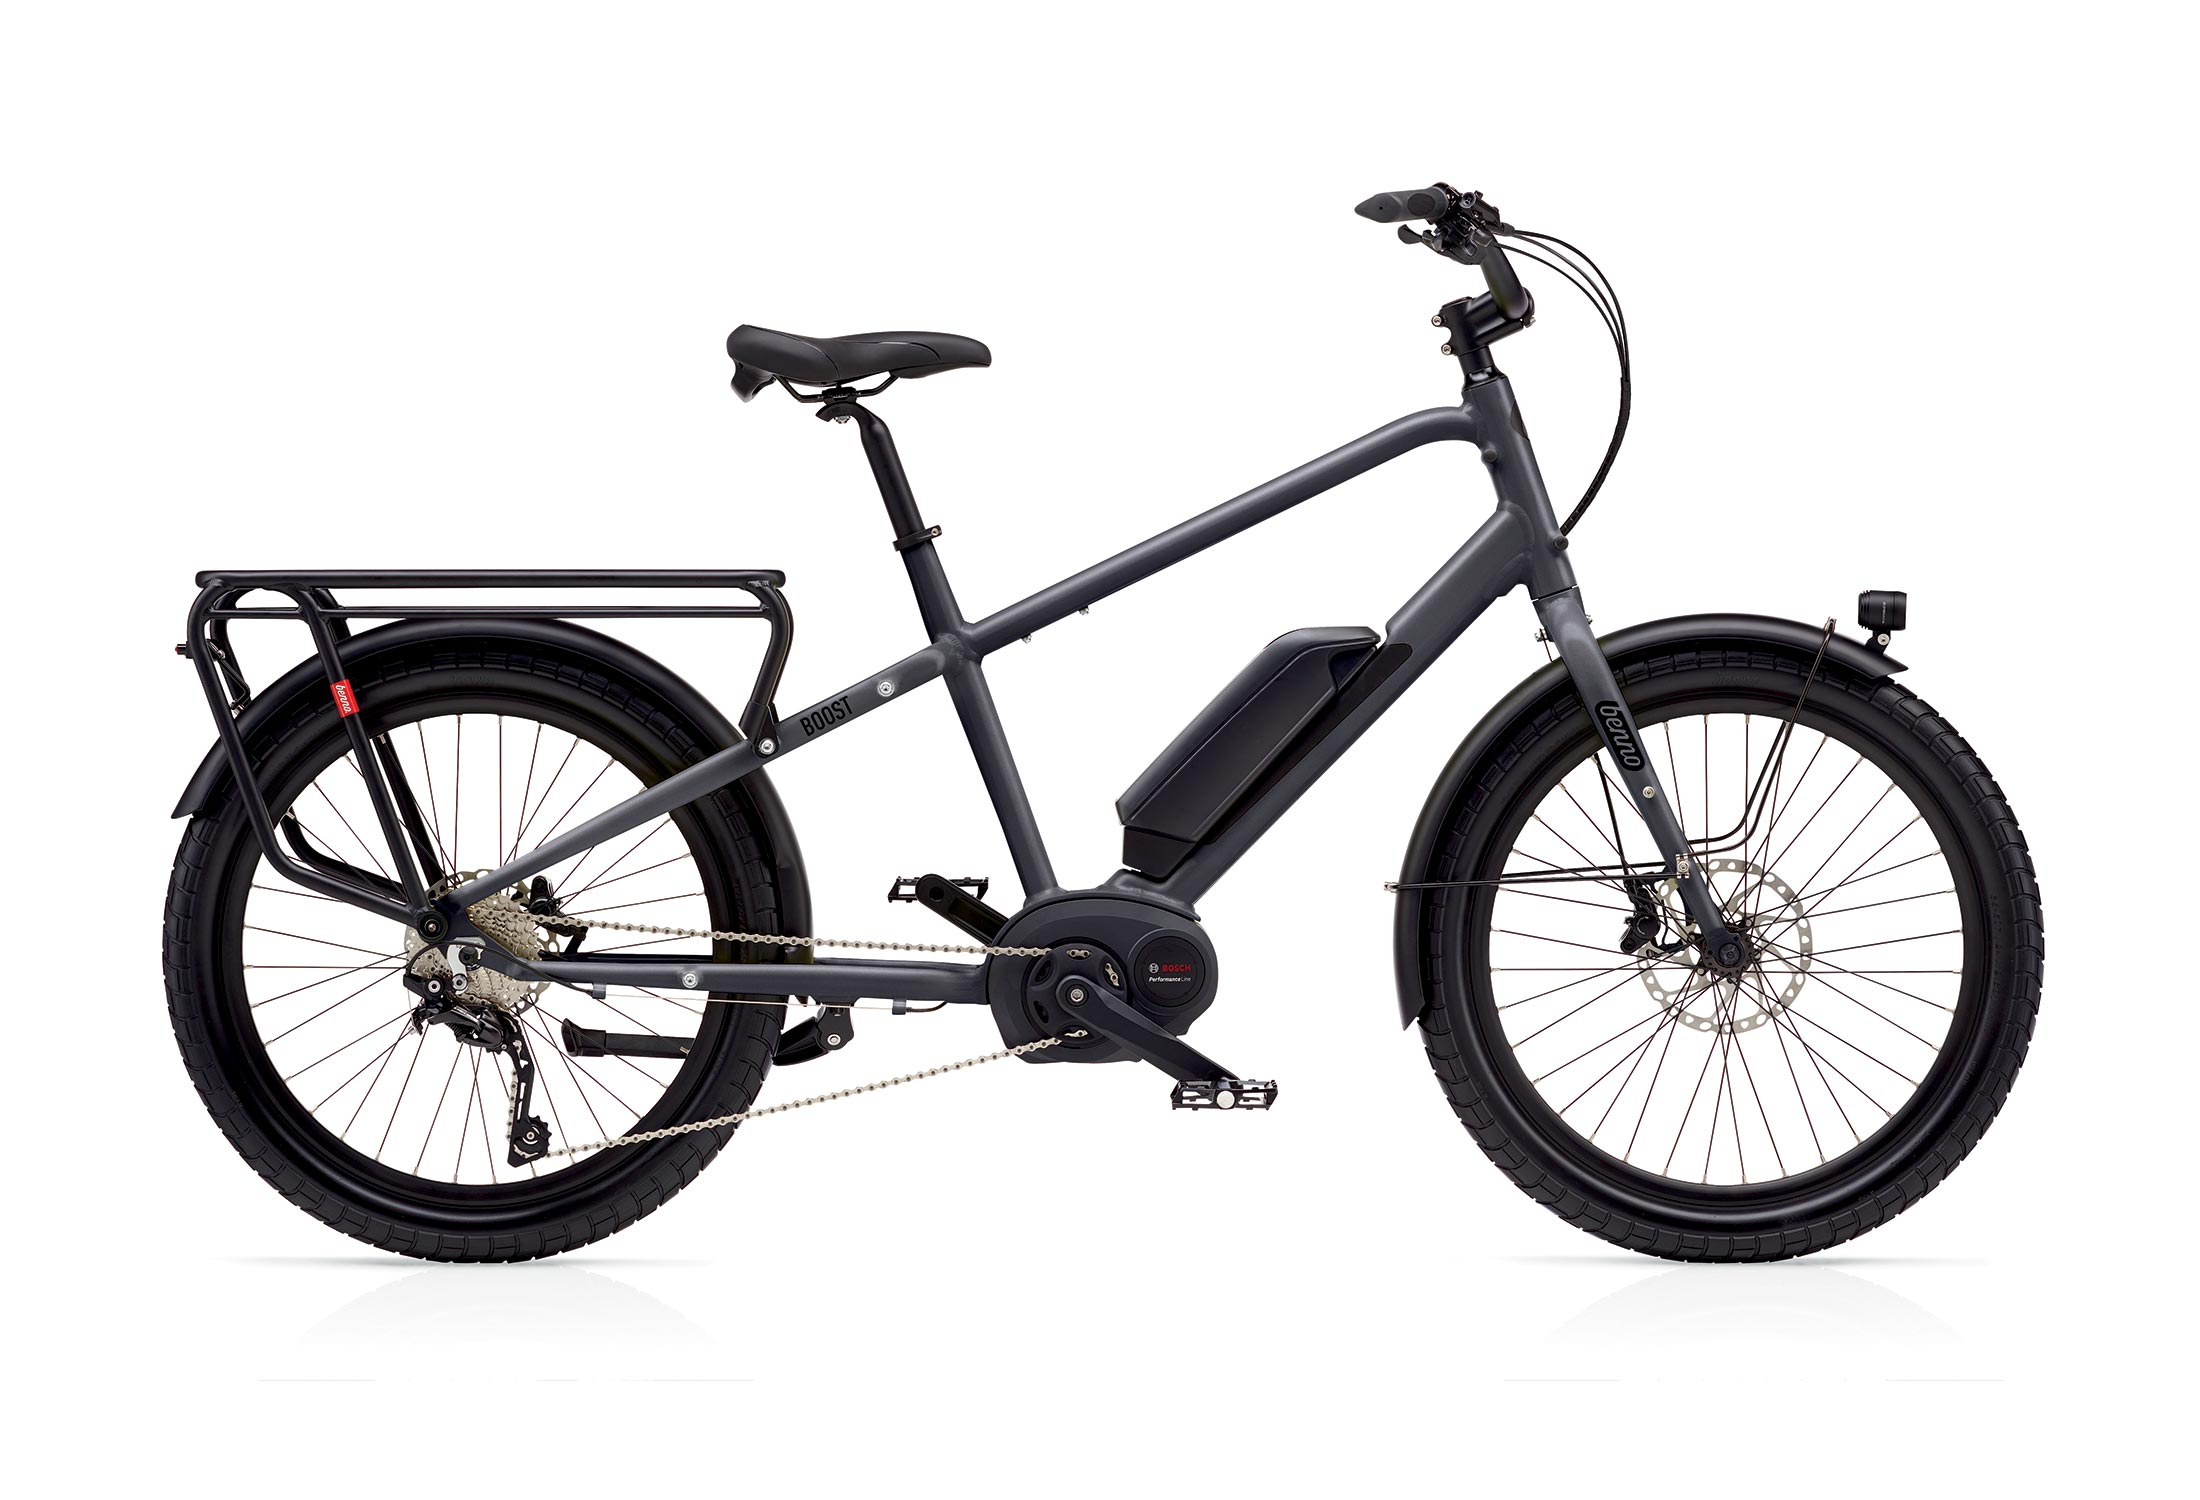 boost e 10D, electric bicycles, benno, e-bikes